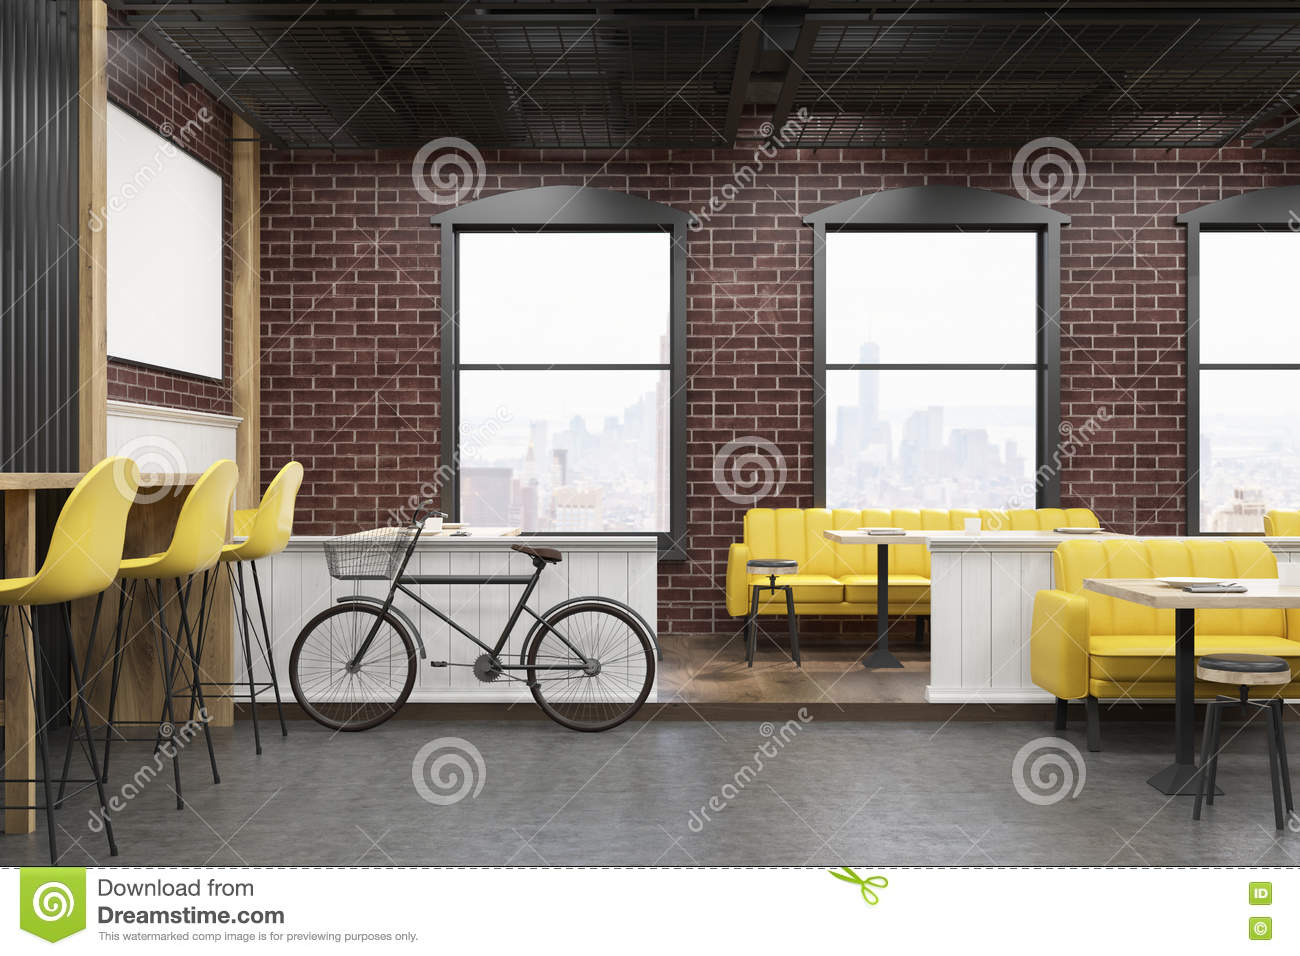 cafe interior with brick walls and a bicycle stock illustration